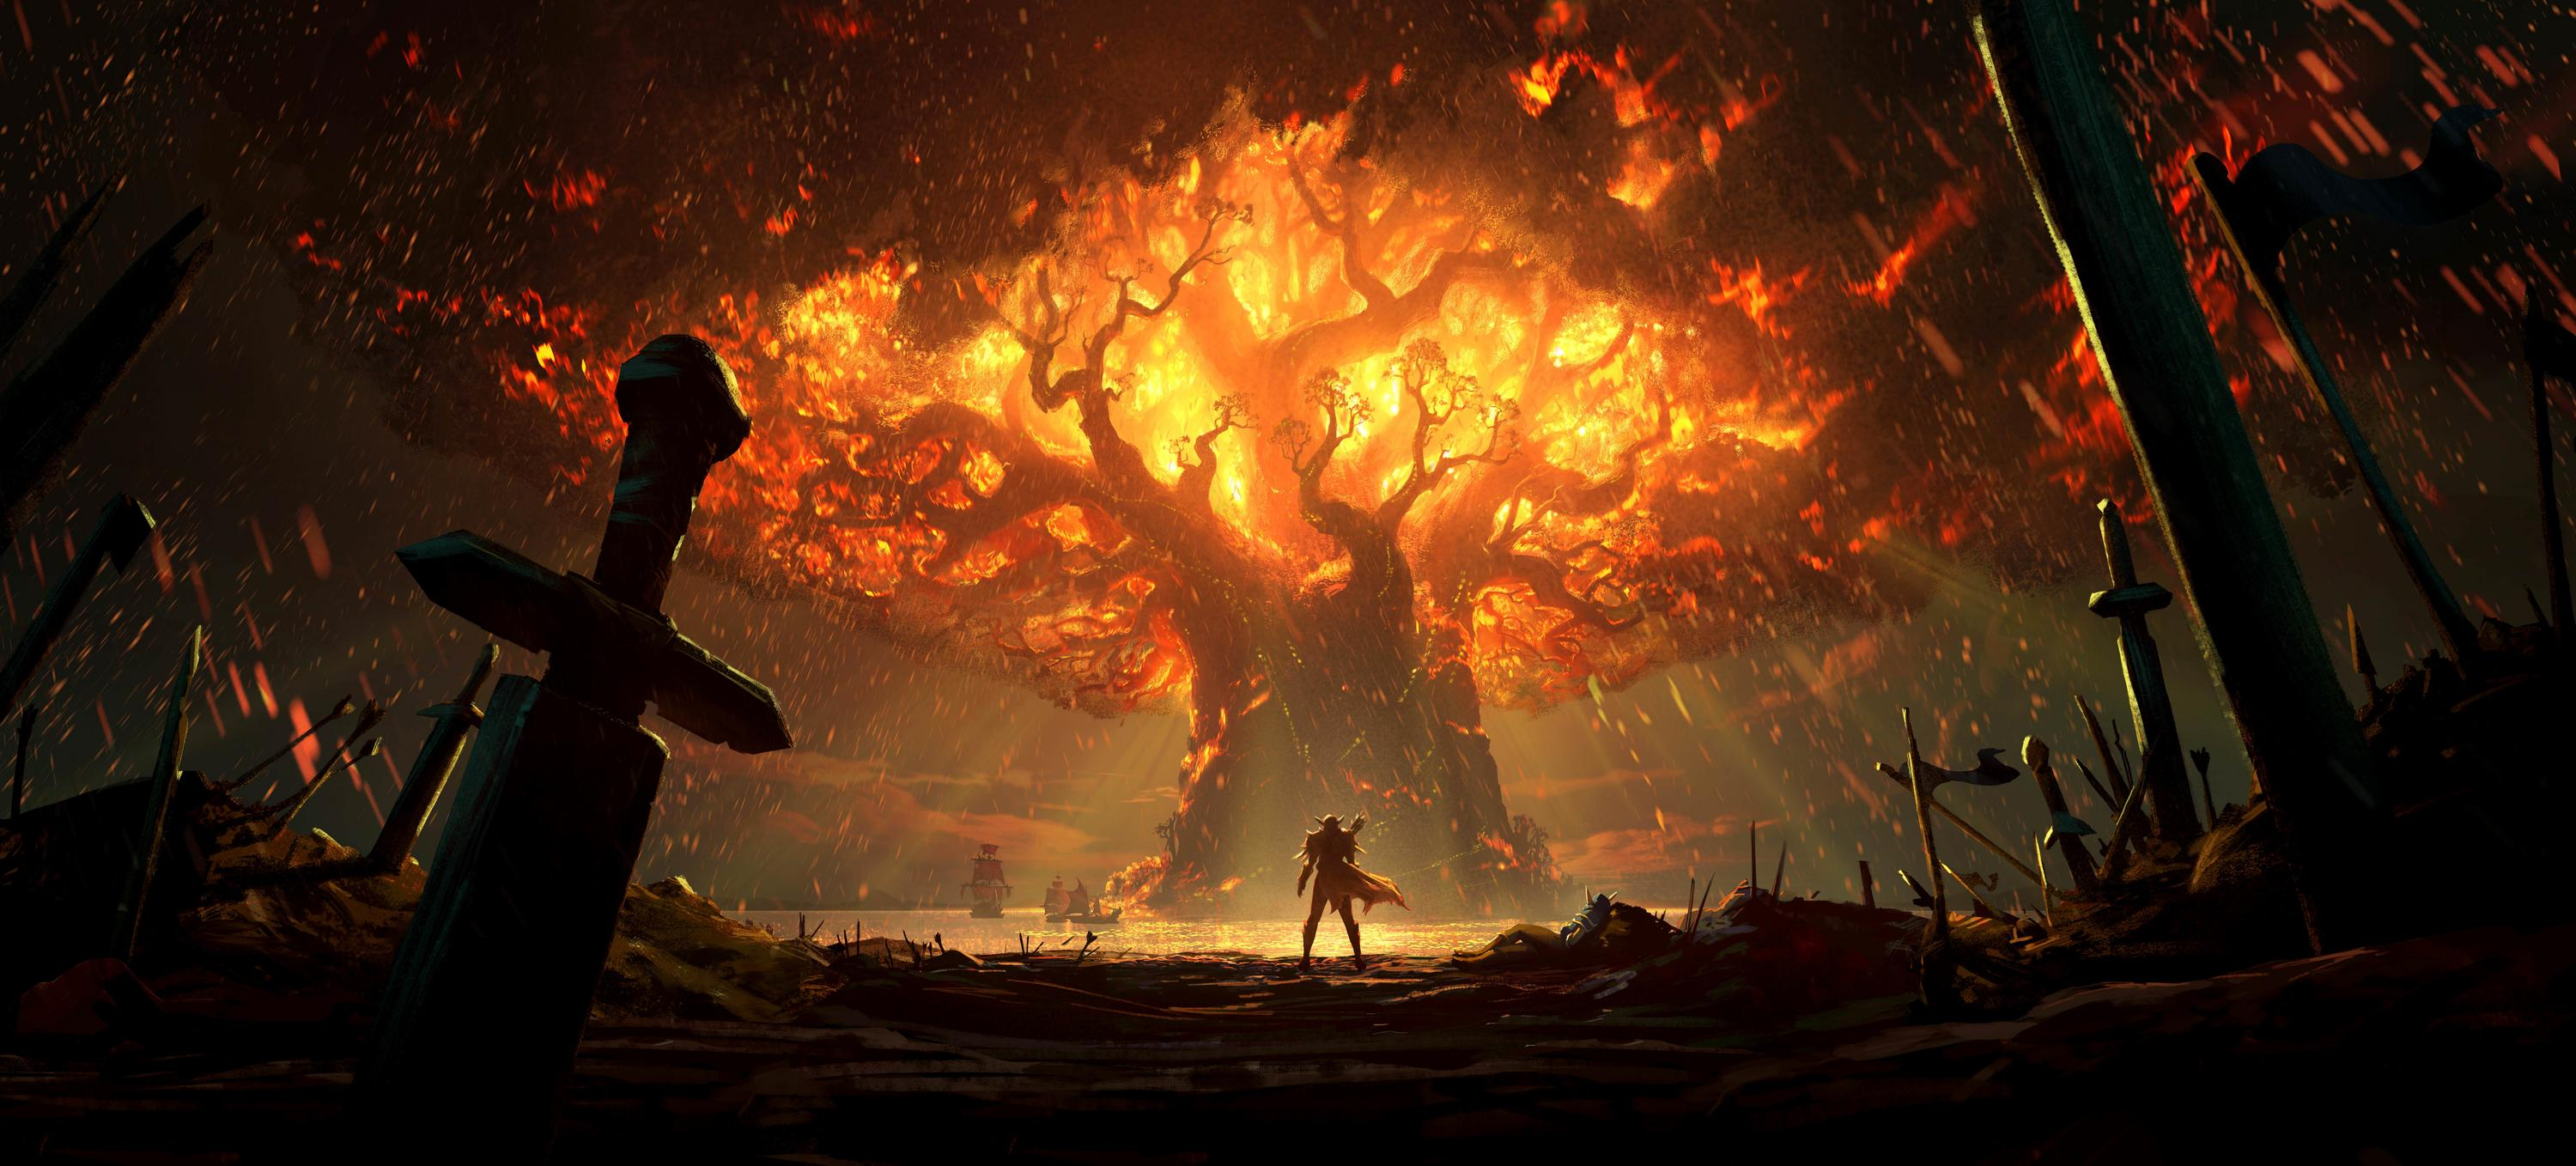 What's happened so far in World of Warcraft: Battle for Azeroth?